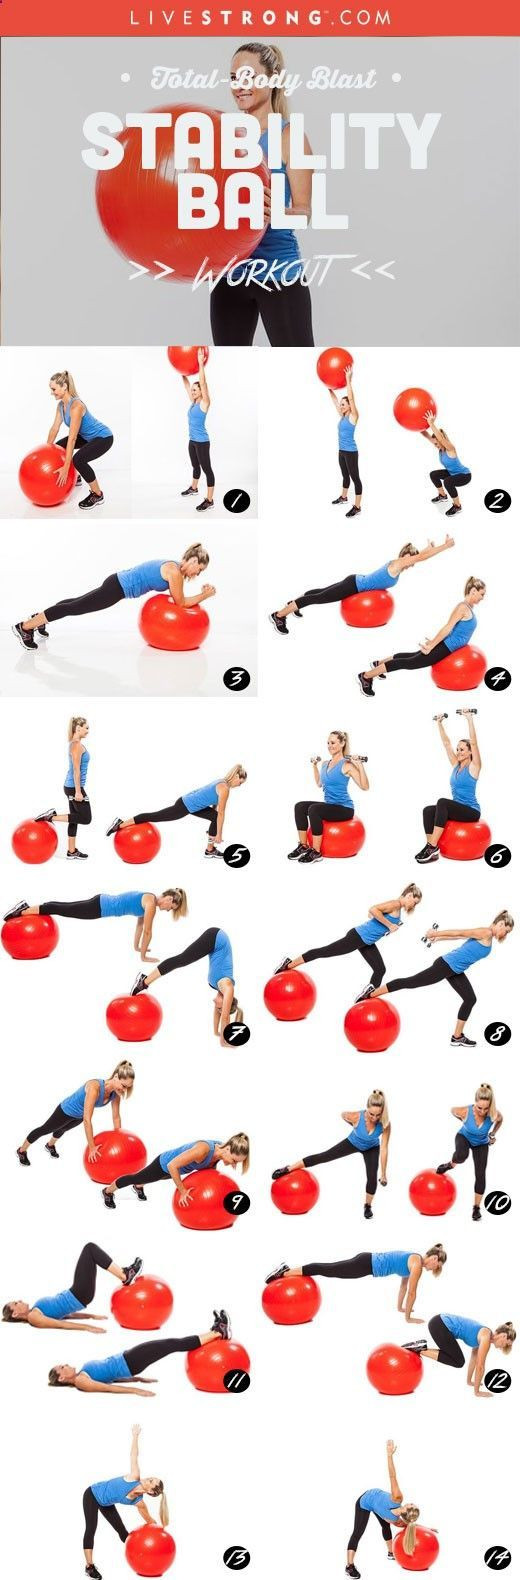 Total-Body Blast Stability Ball Workout: www.livestrong.co...